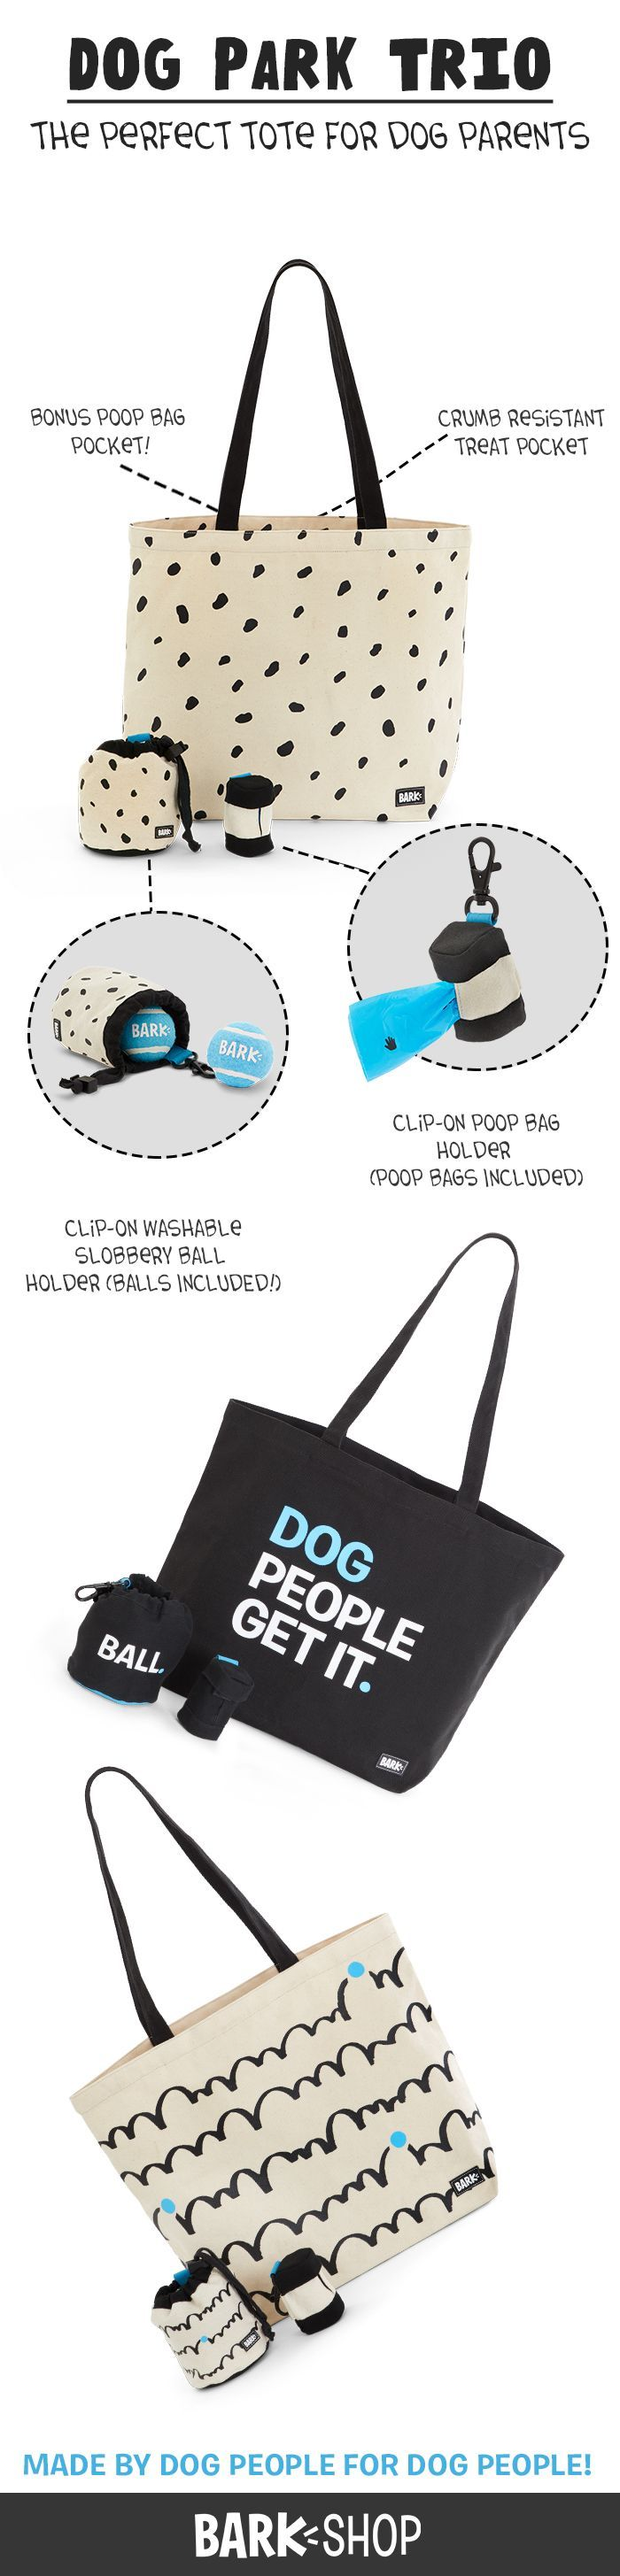 This trio was made with dog people in mind! It'll make your life SO. MUCH. EASIER.